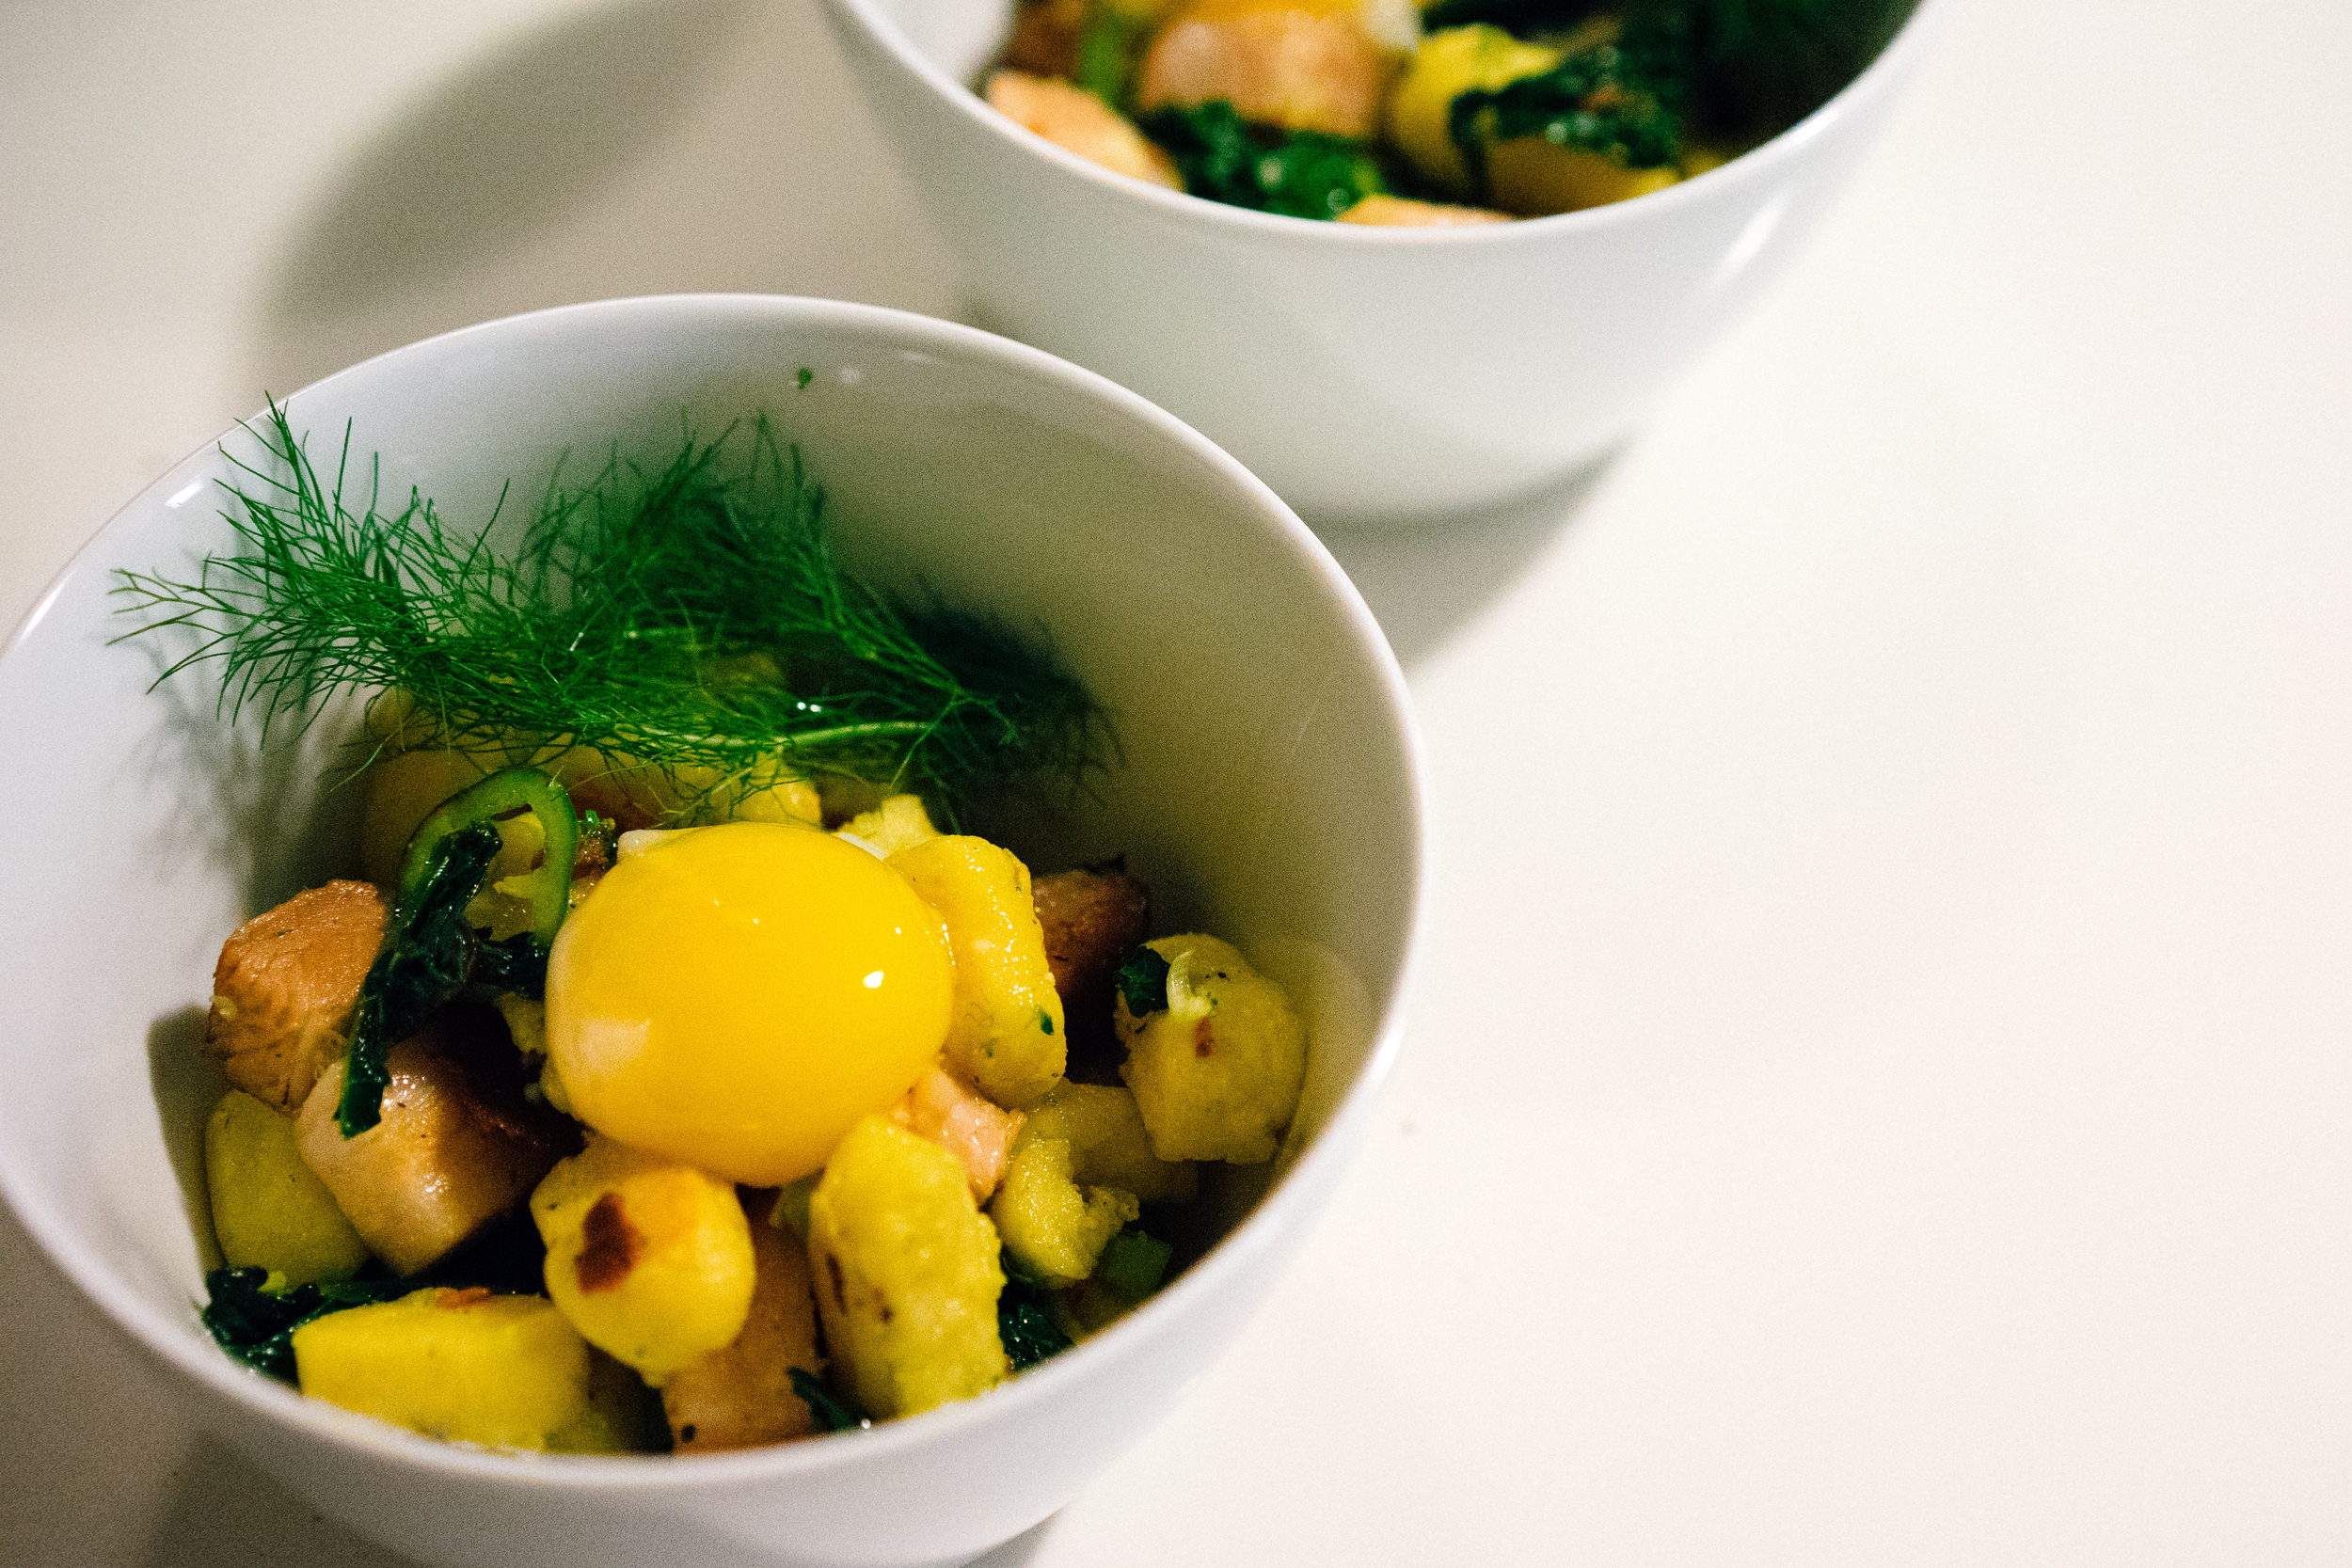 Third Course: Pan Fried Gnocchi with Sous Vide Pork Belly, Broccoli Rabe, and Egg Yolk